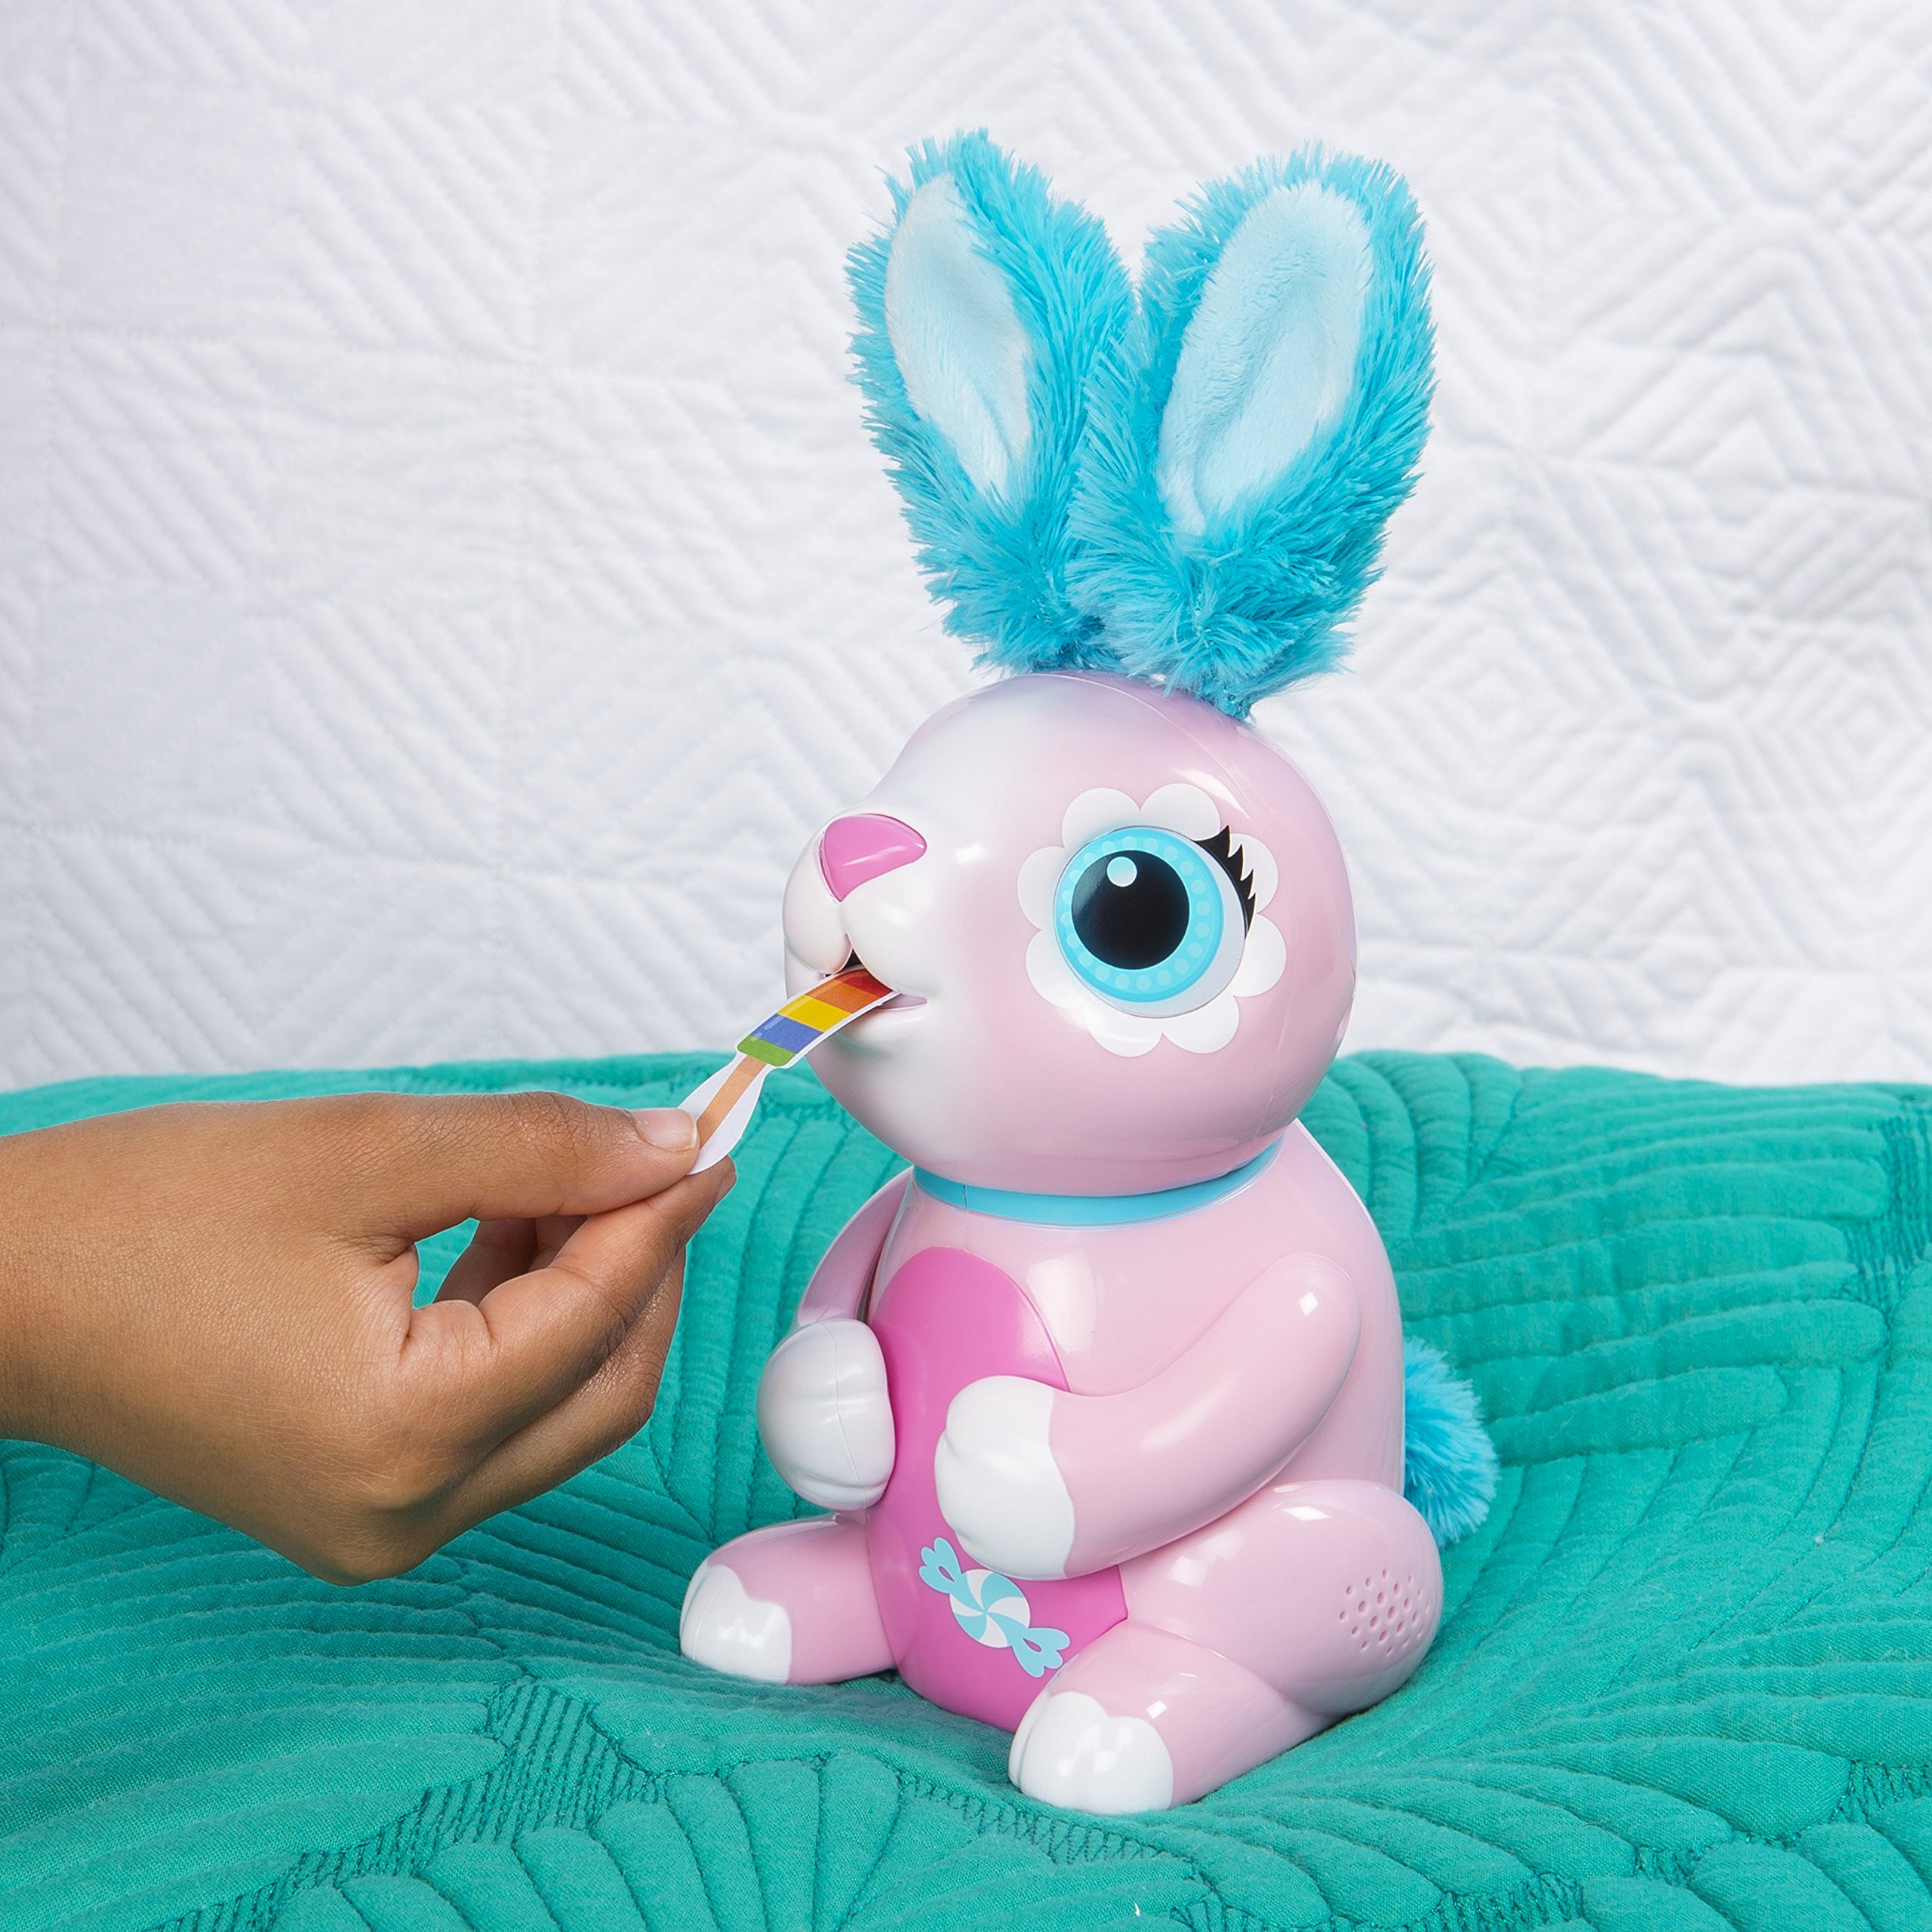 Zoomer Hungry Bunnies Shreddy, Interactive Robotic Rabbit That Eats, Ages 5 & Up by Zoomer (Image #6)